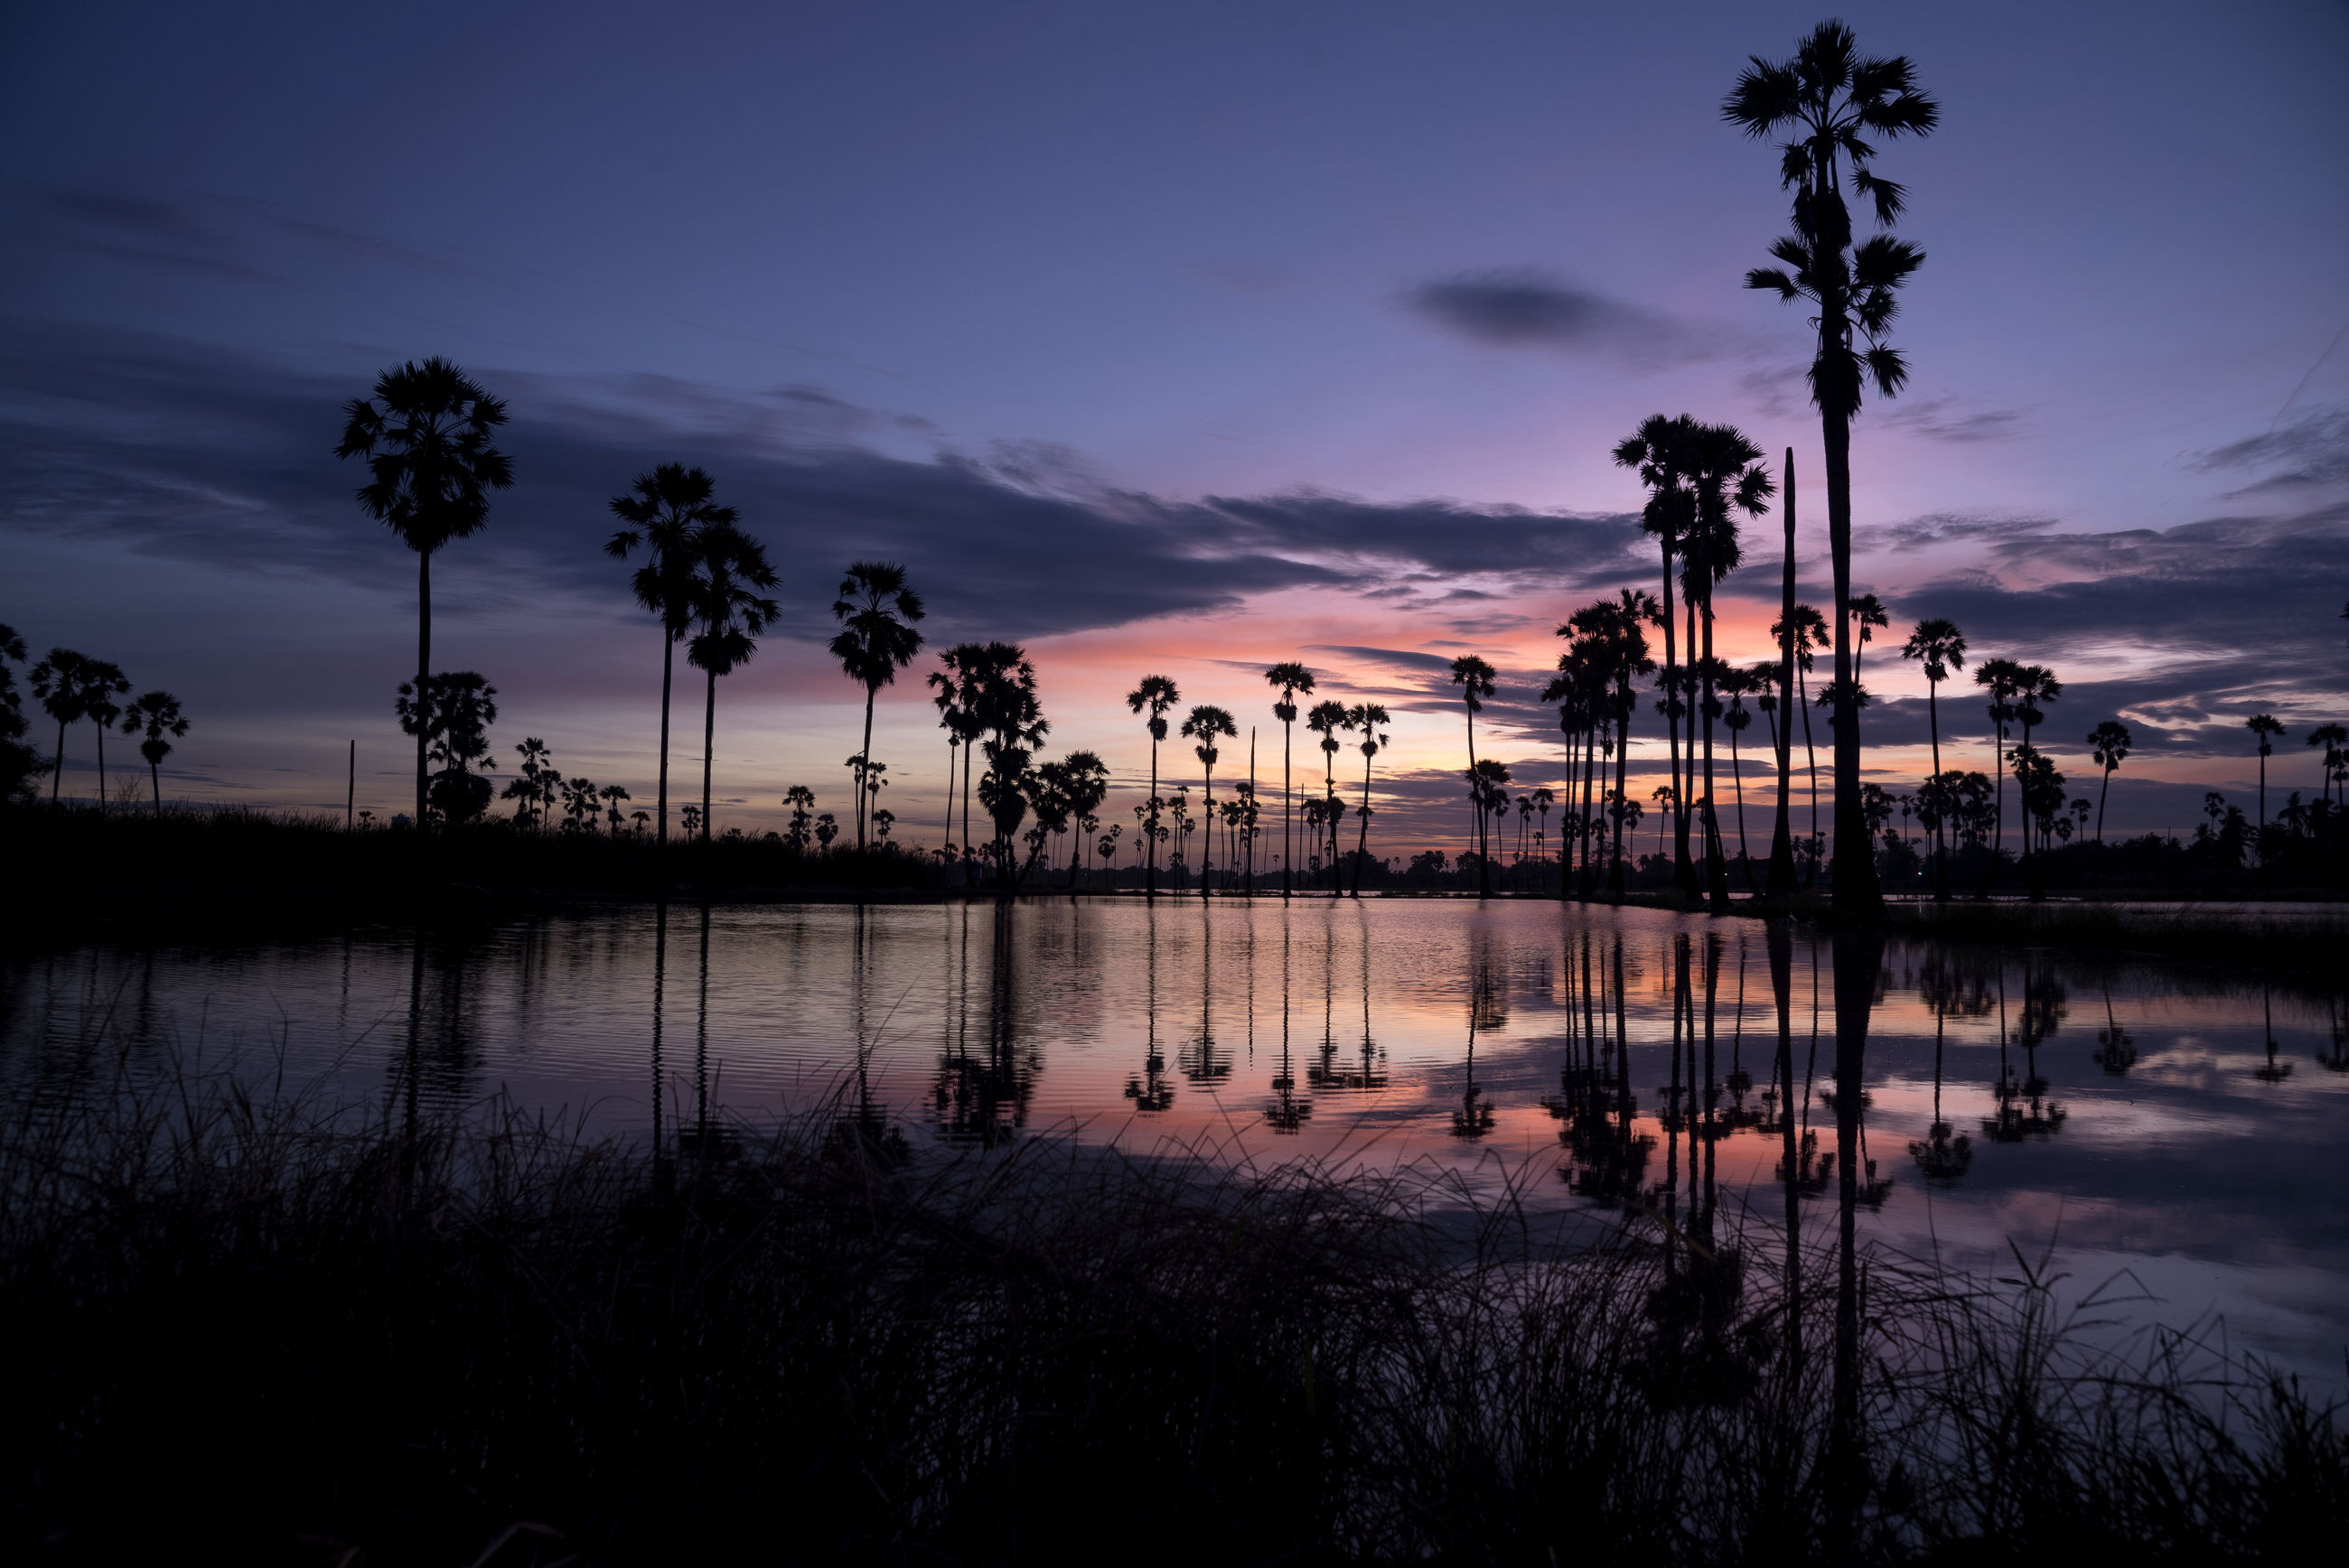 SILHOUETTE PALM TREES BY LAKE AT SUNSET